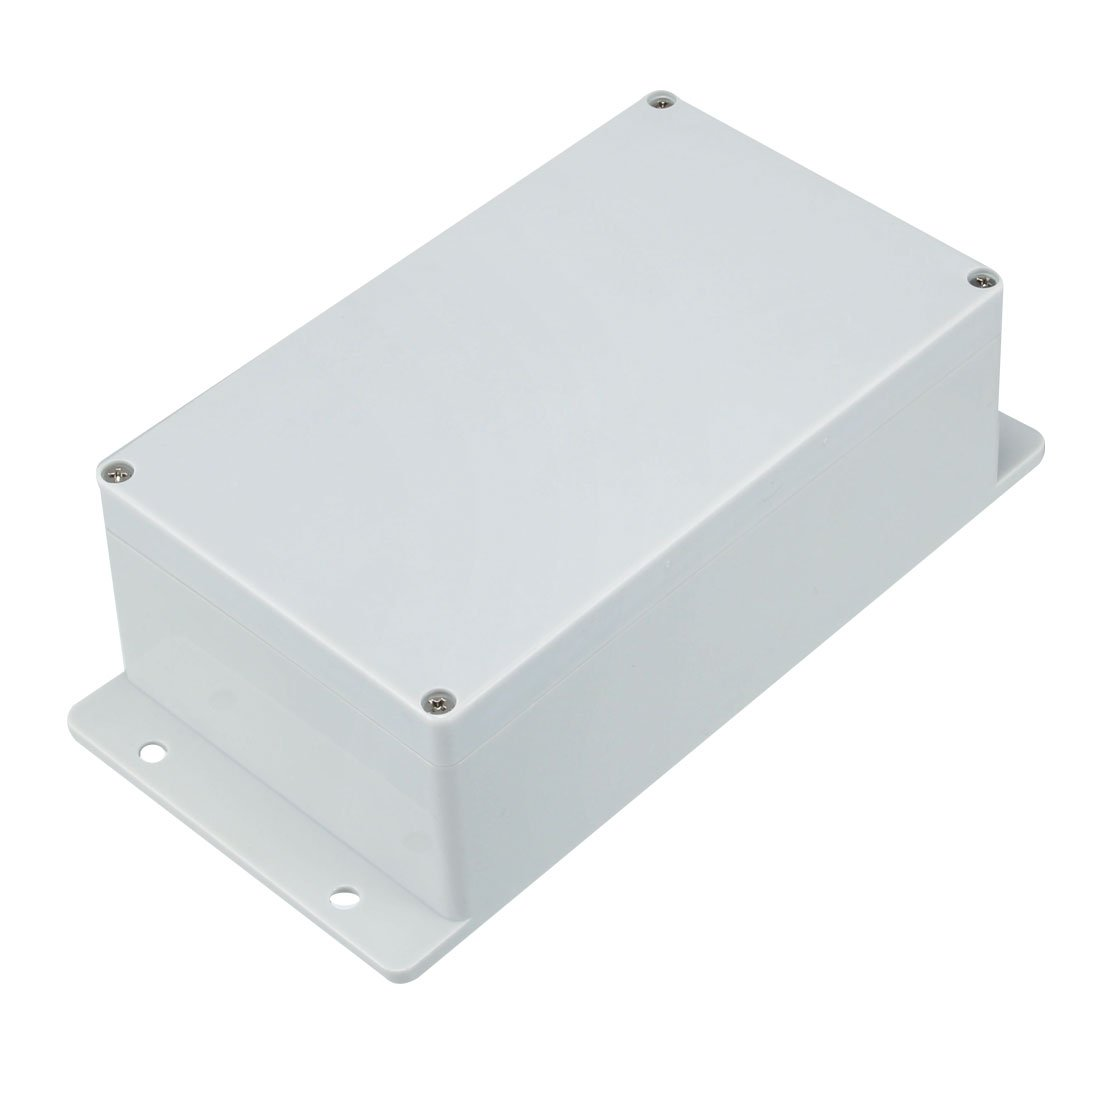 uxcell 200 x 120 x 75mm Electronic Plastic DIY Junction Box Enclosure Case Gray